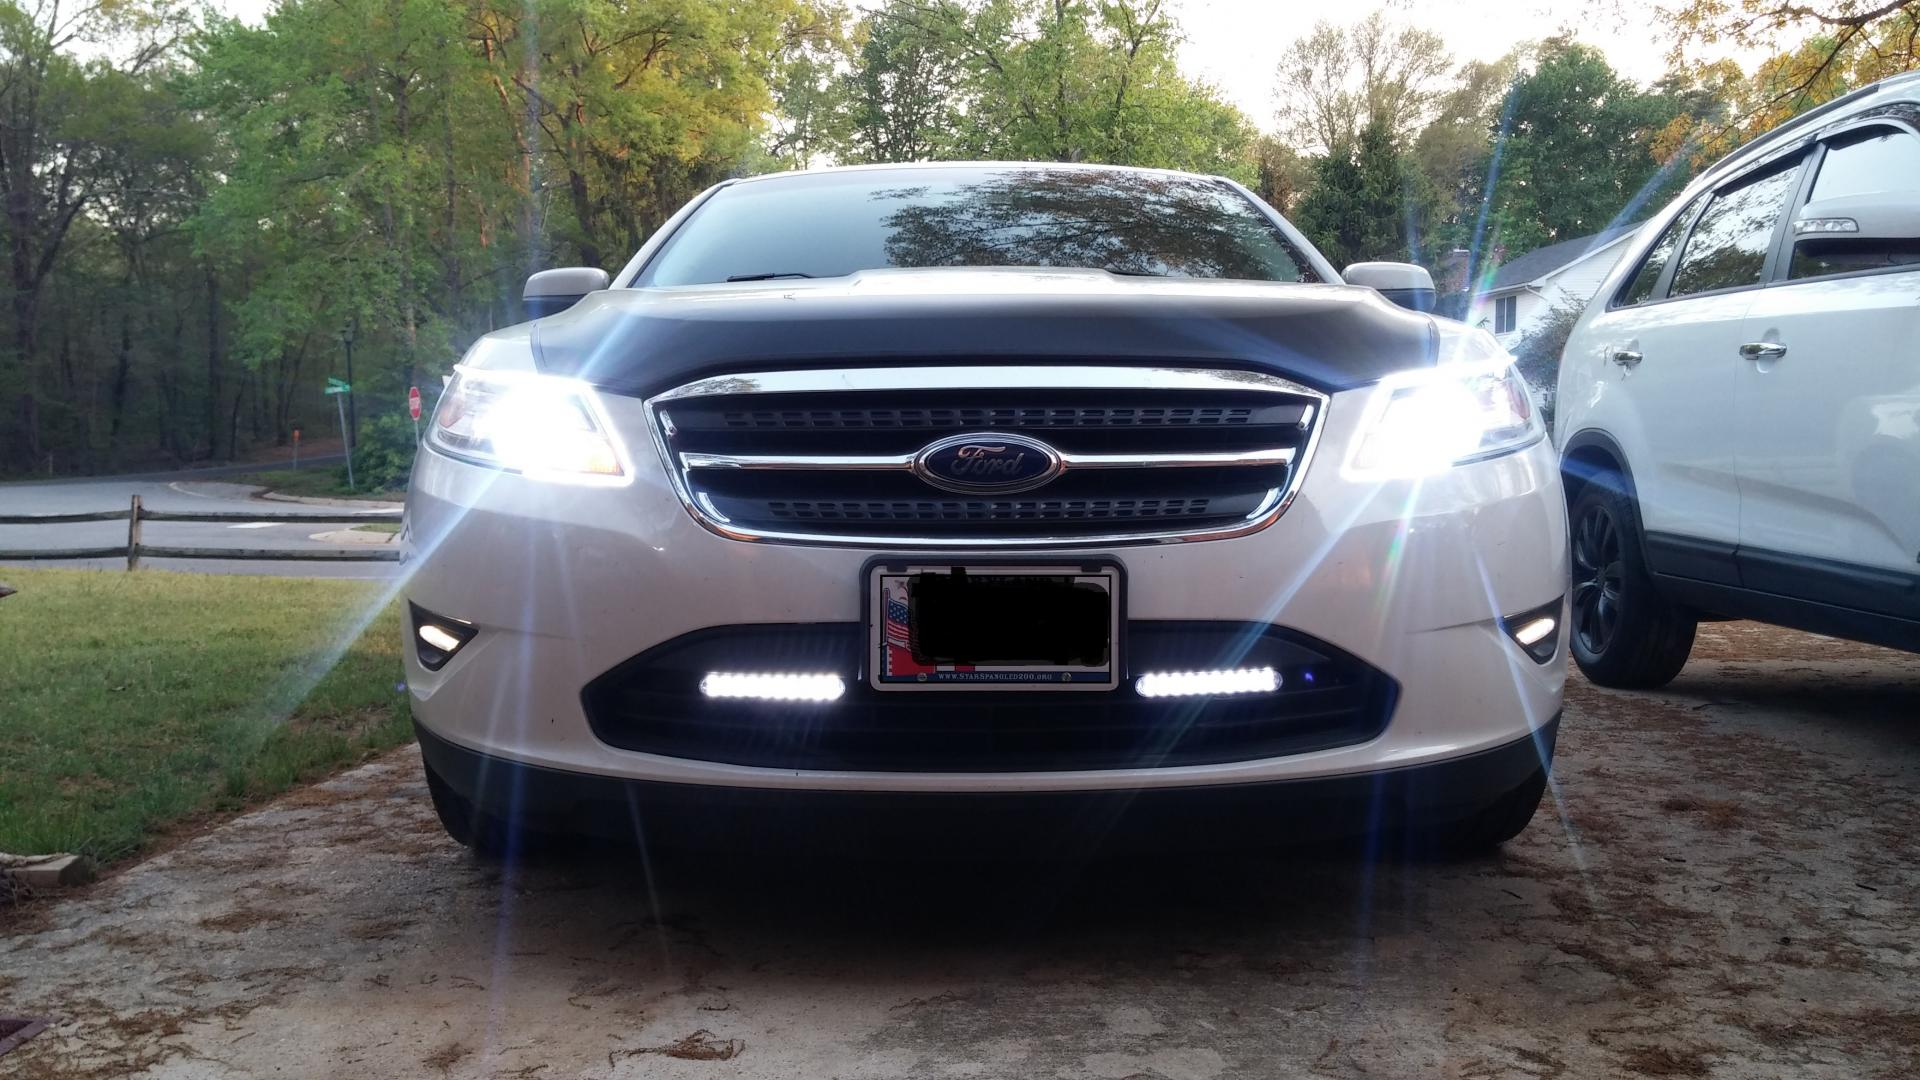 Ford Taurus Ses Wiring 6k 55w Hid Headlights With Led Strips And Led Drls